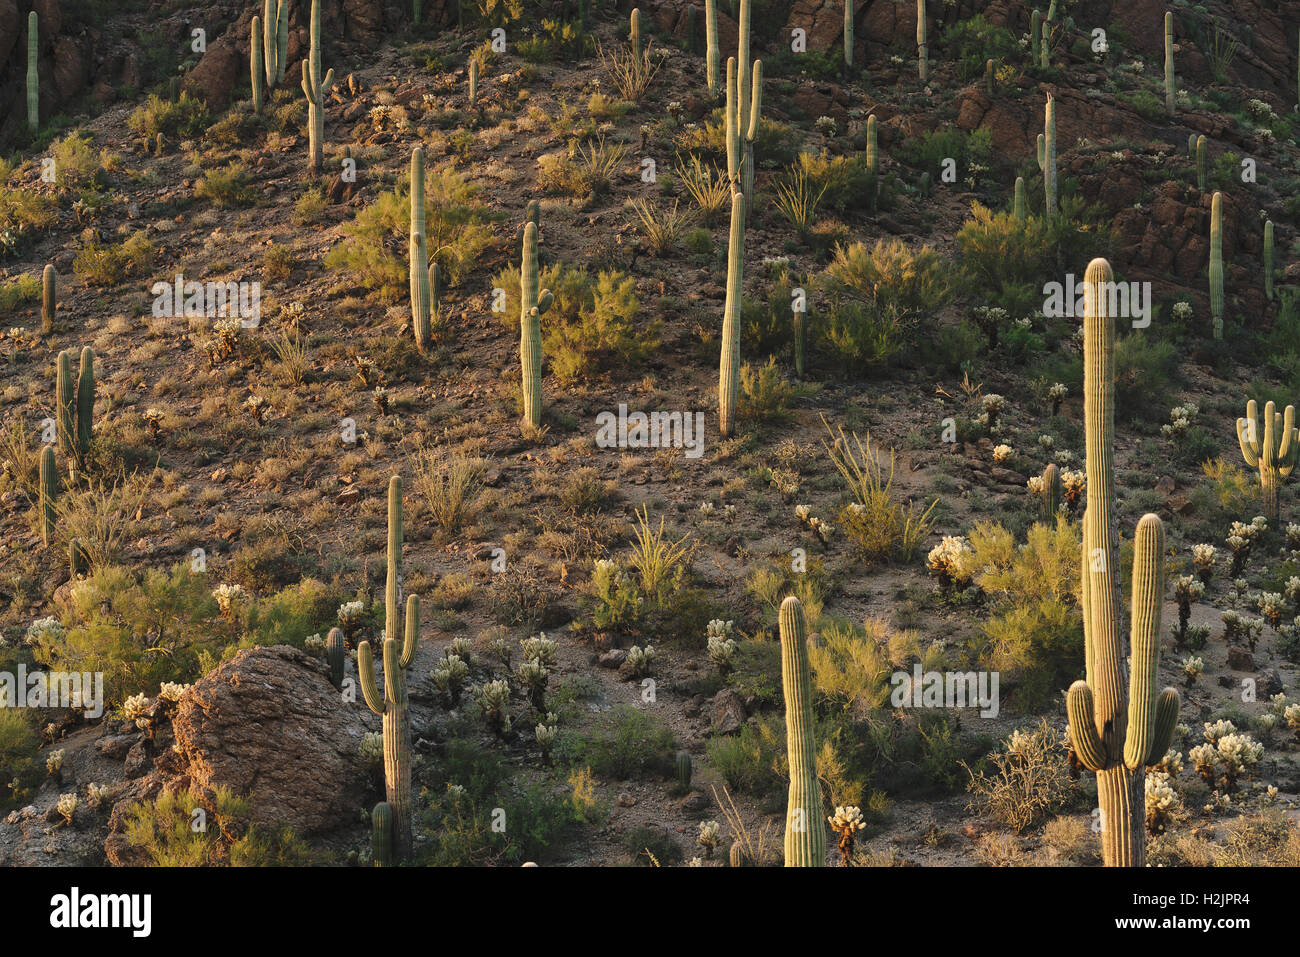 Saguaro cacti in Saguaro National Park, located near Tuscon, Arizona. - Stock Image